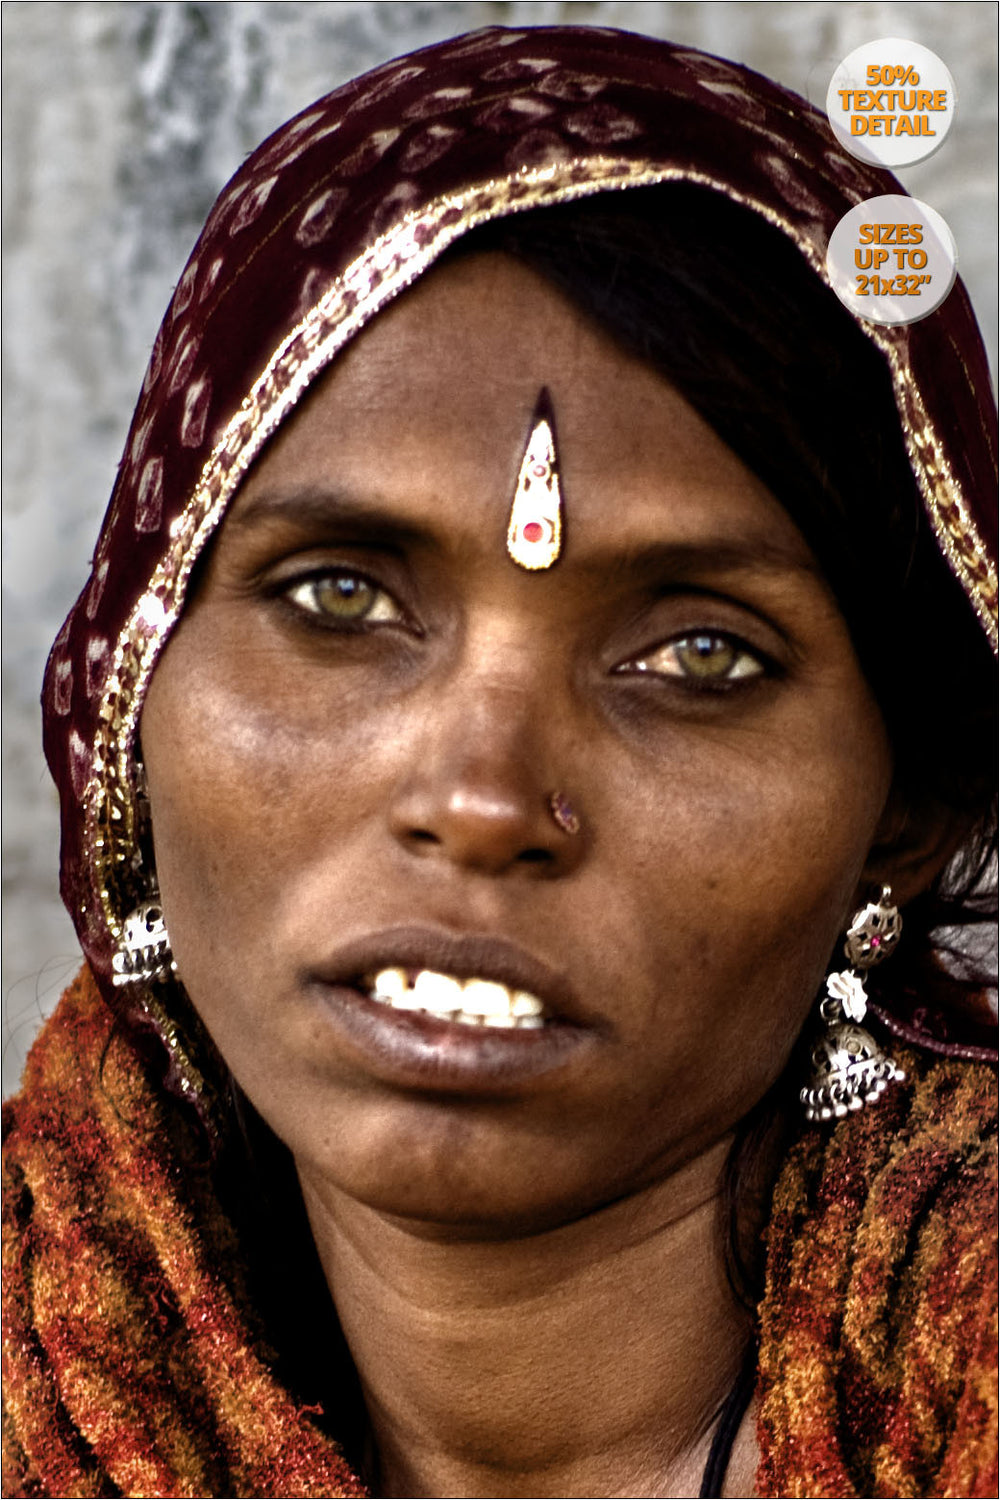 Portrait of Rajastani woman, Pushkar Camel Fair, Rajastan. | 50% Detail view.